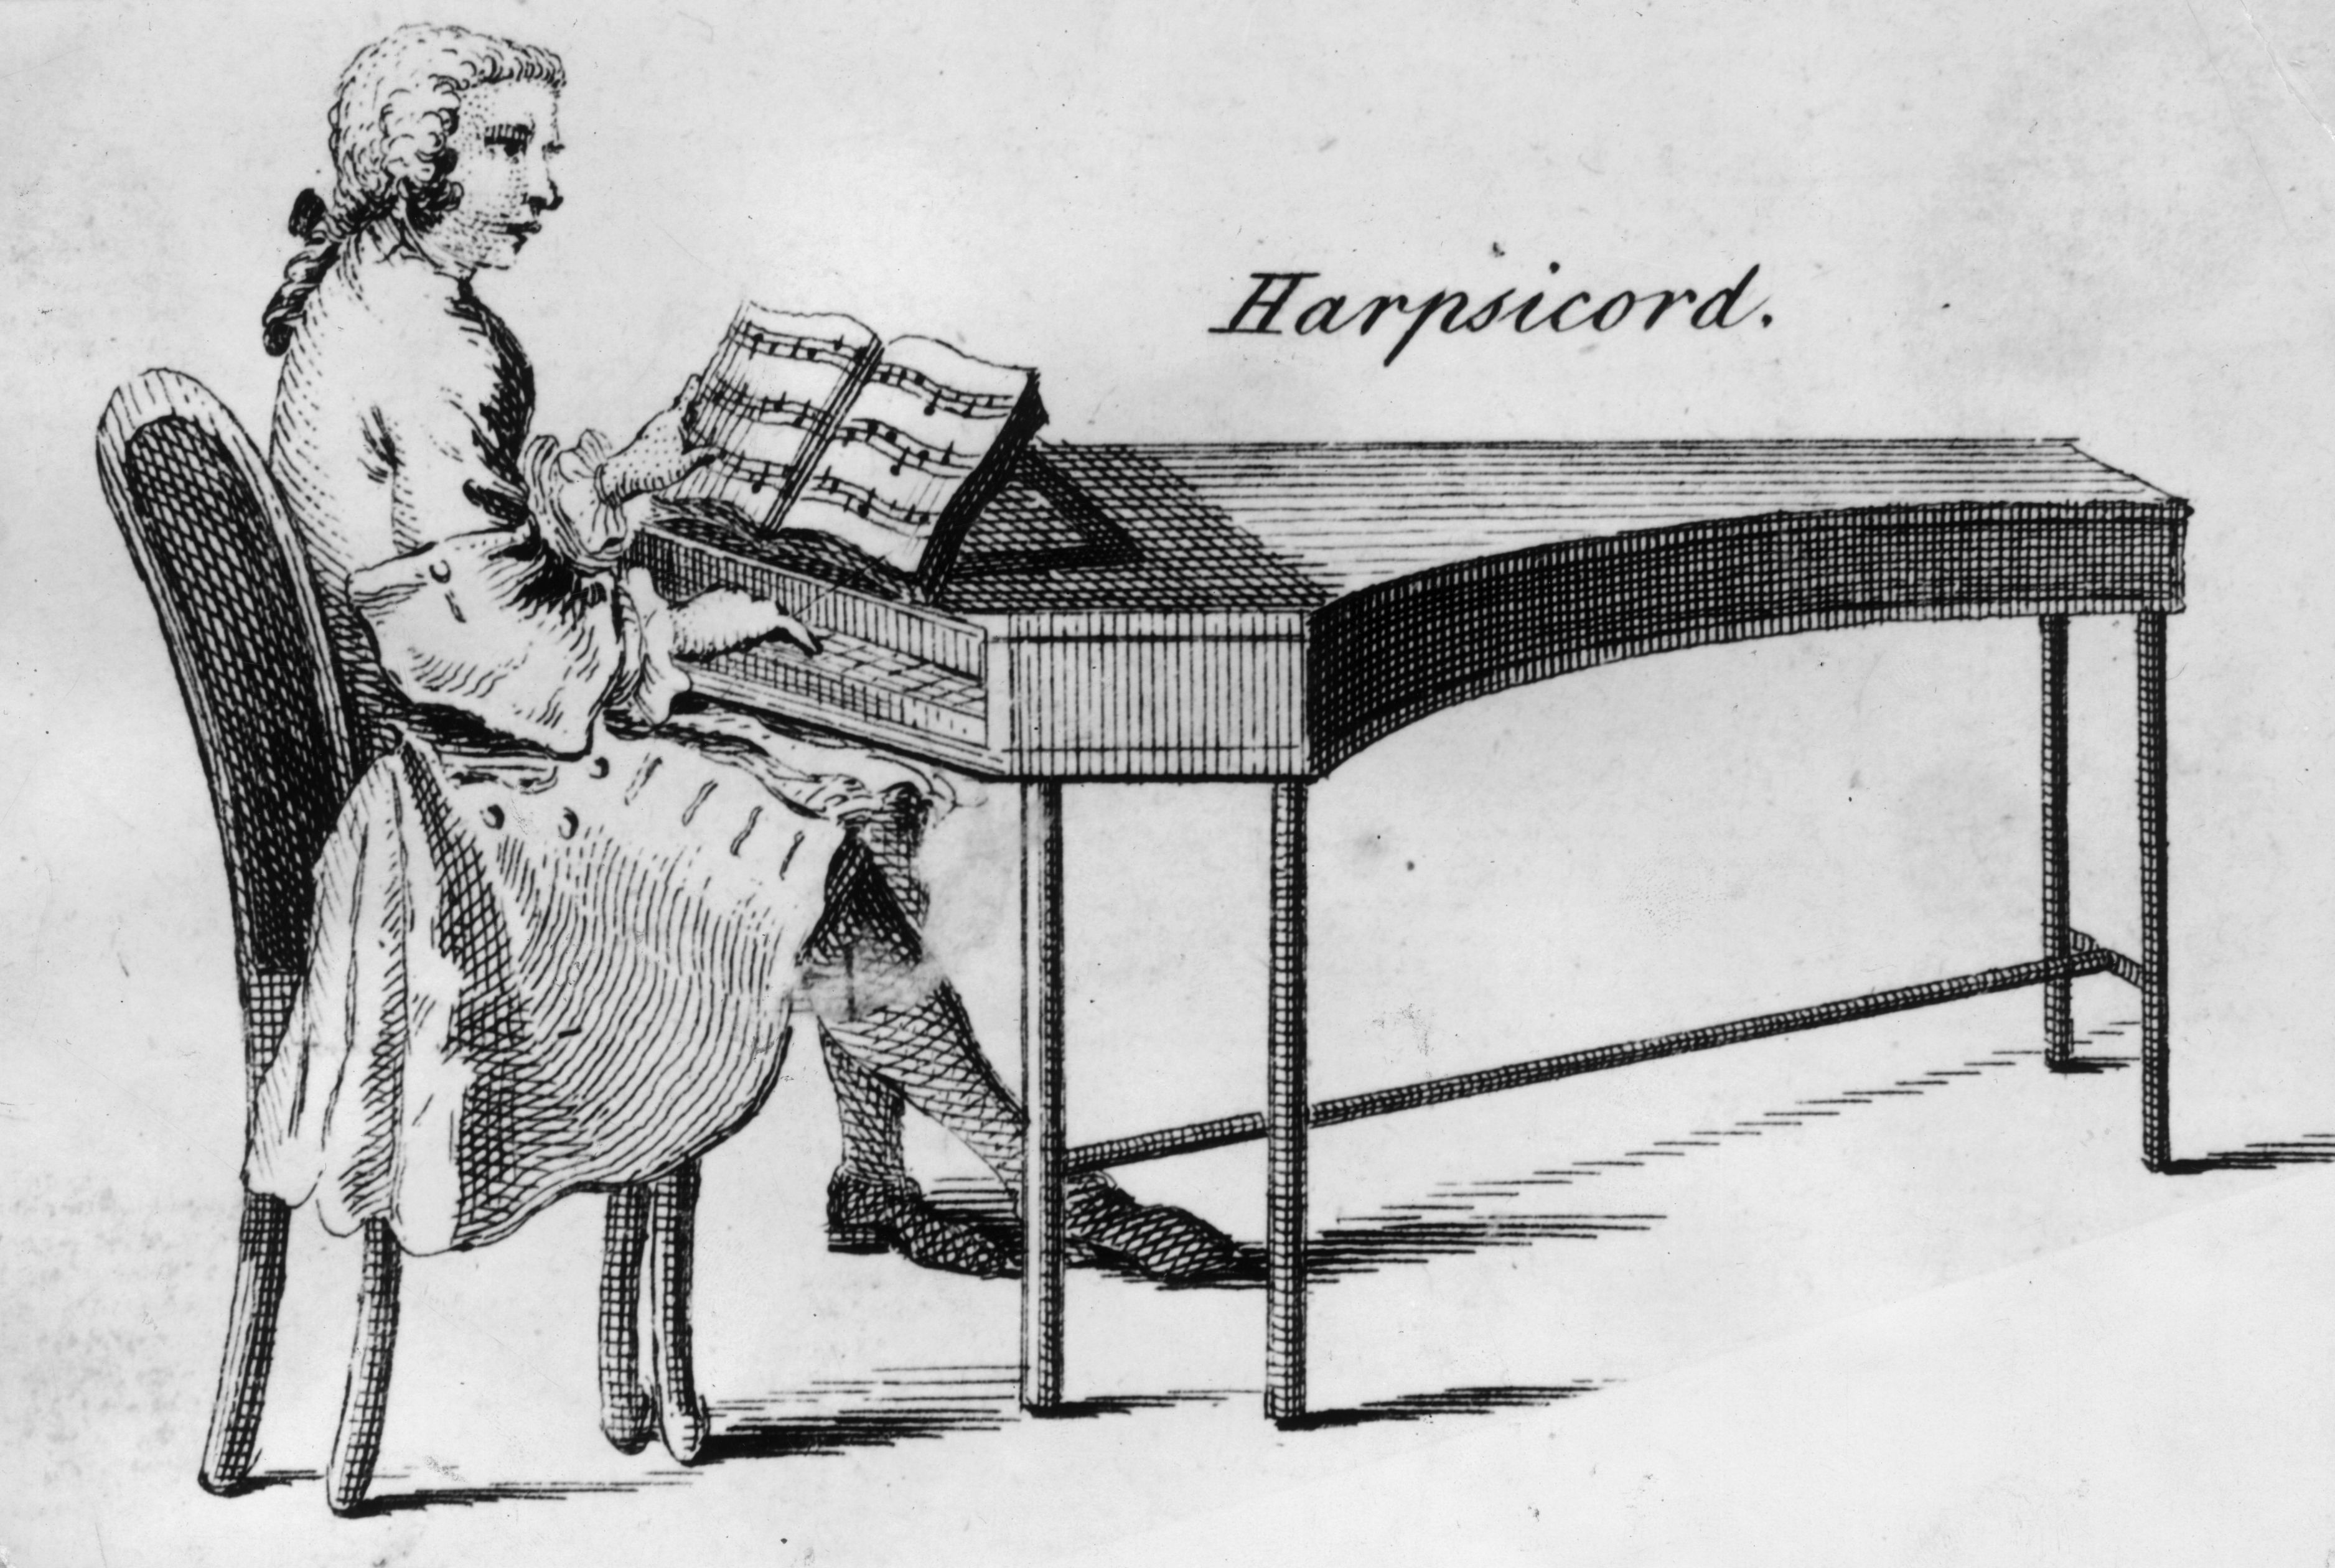 Organ Piano Drawing a 1750 Drawing Shows a Man